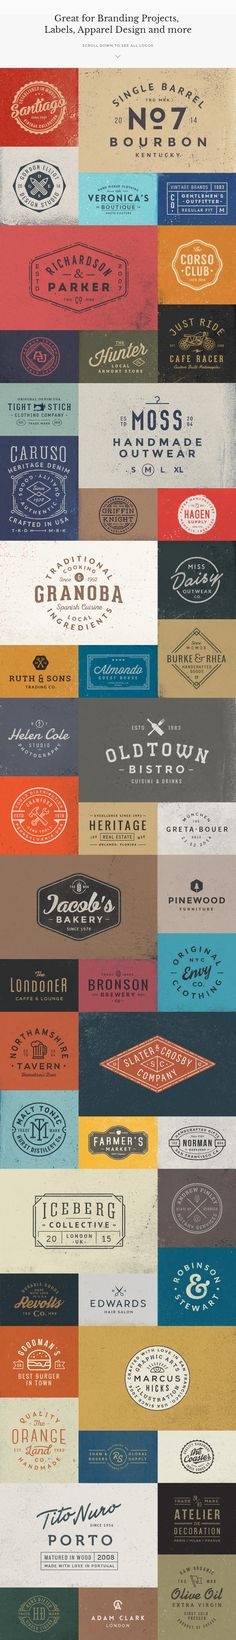 GraphicBurger - 50 Logo Templates Bundle                                                                                                                                                                                 More